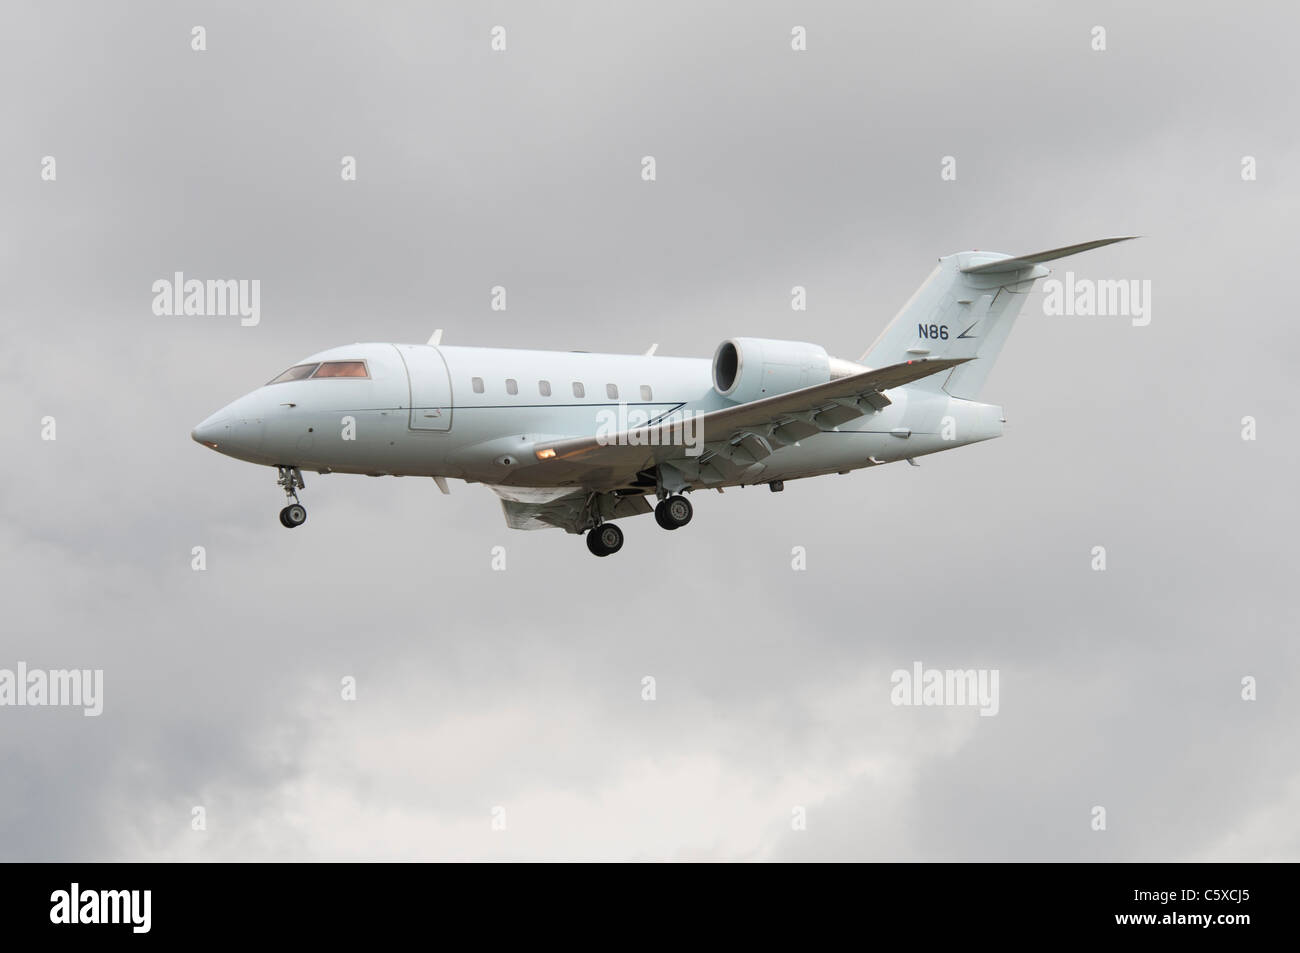 Canadair CL-600-2B16 Challenger 601-3R N86 from the United States Federal Aviation Administration (FAA) arriving - Stock Image